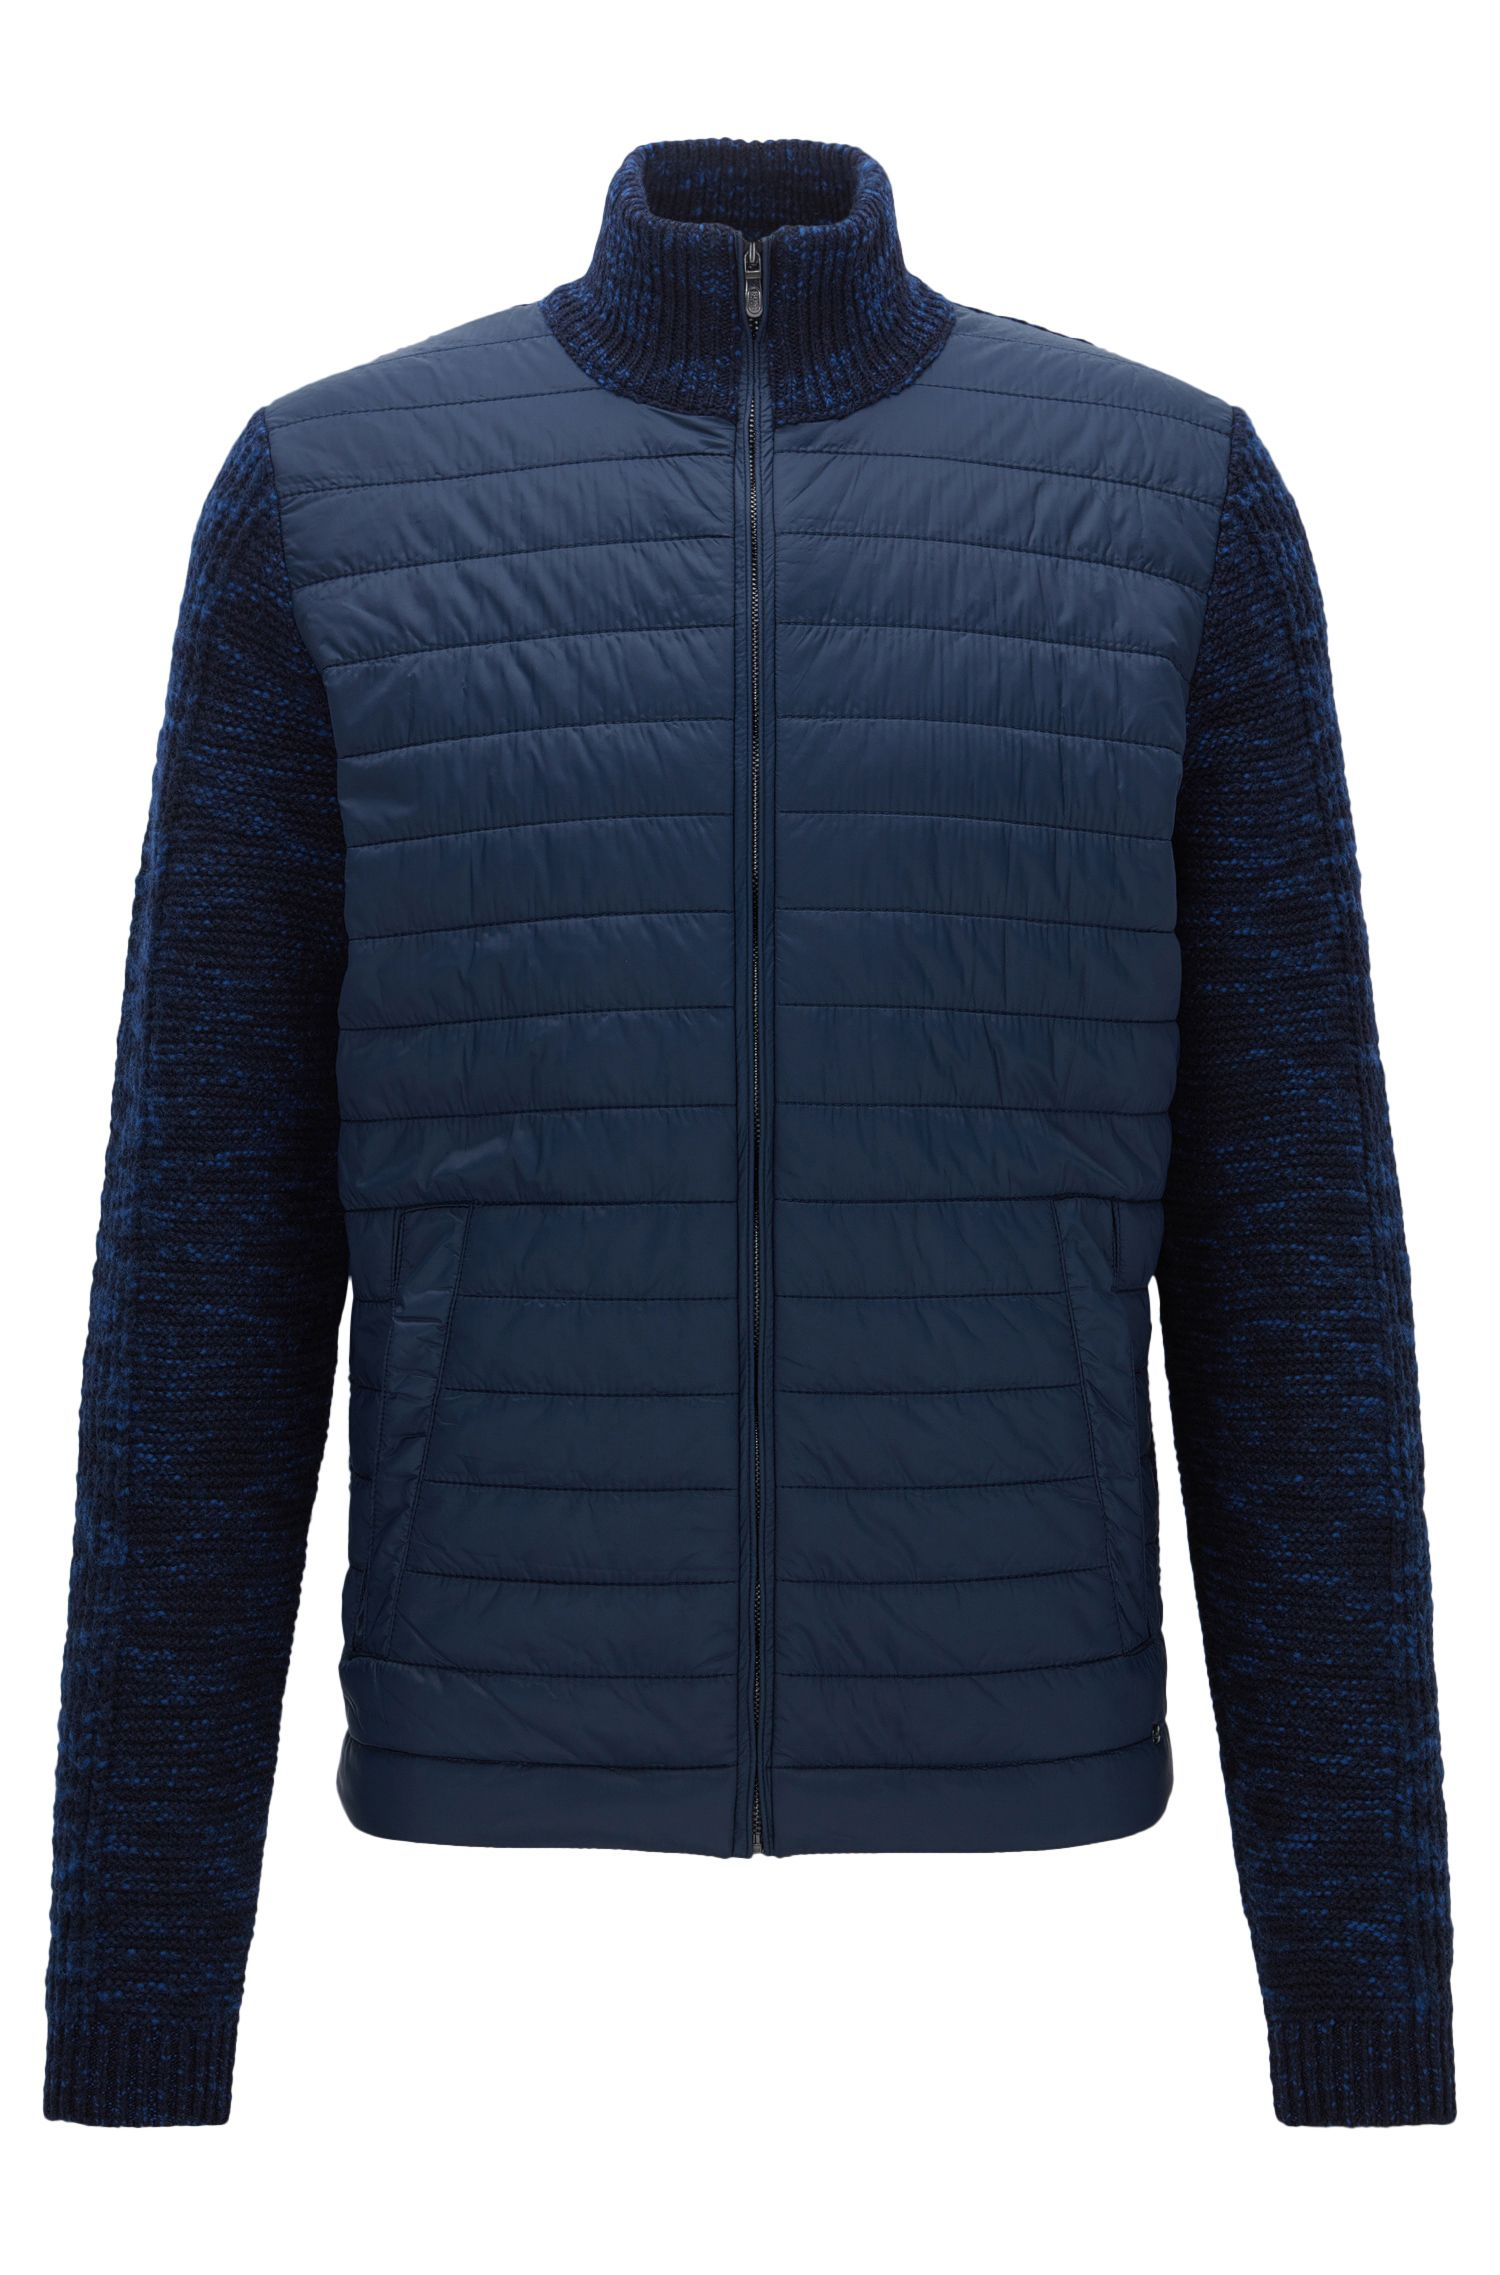 Veste Regular fit rembourrée en maille